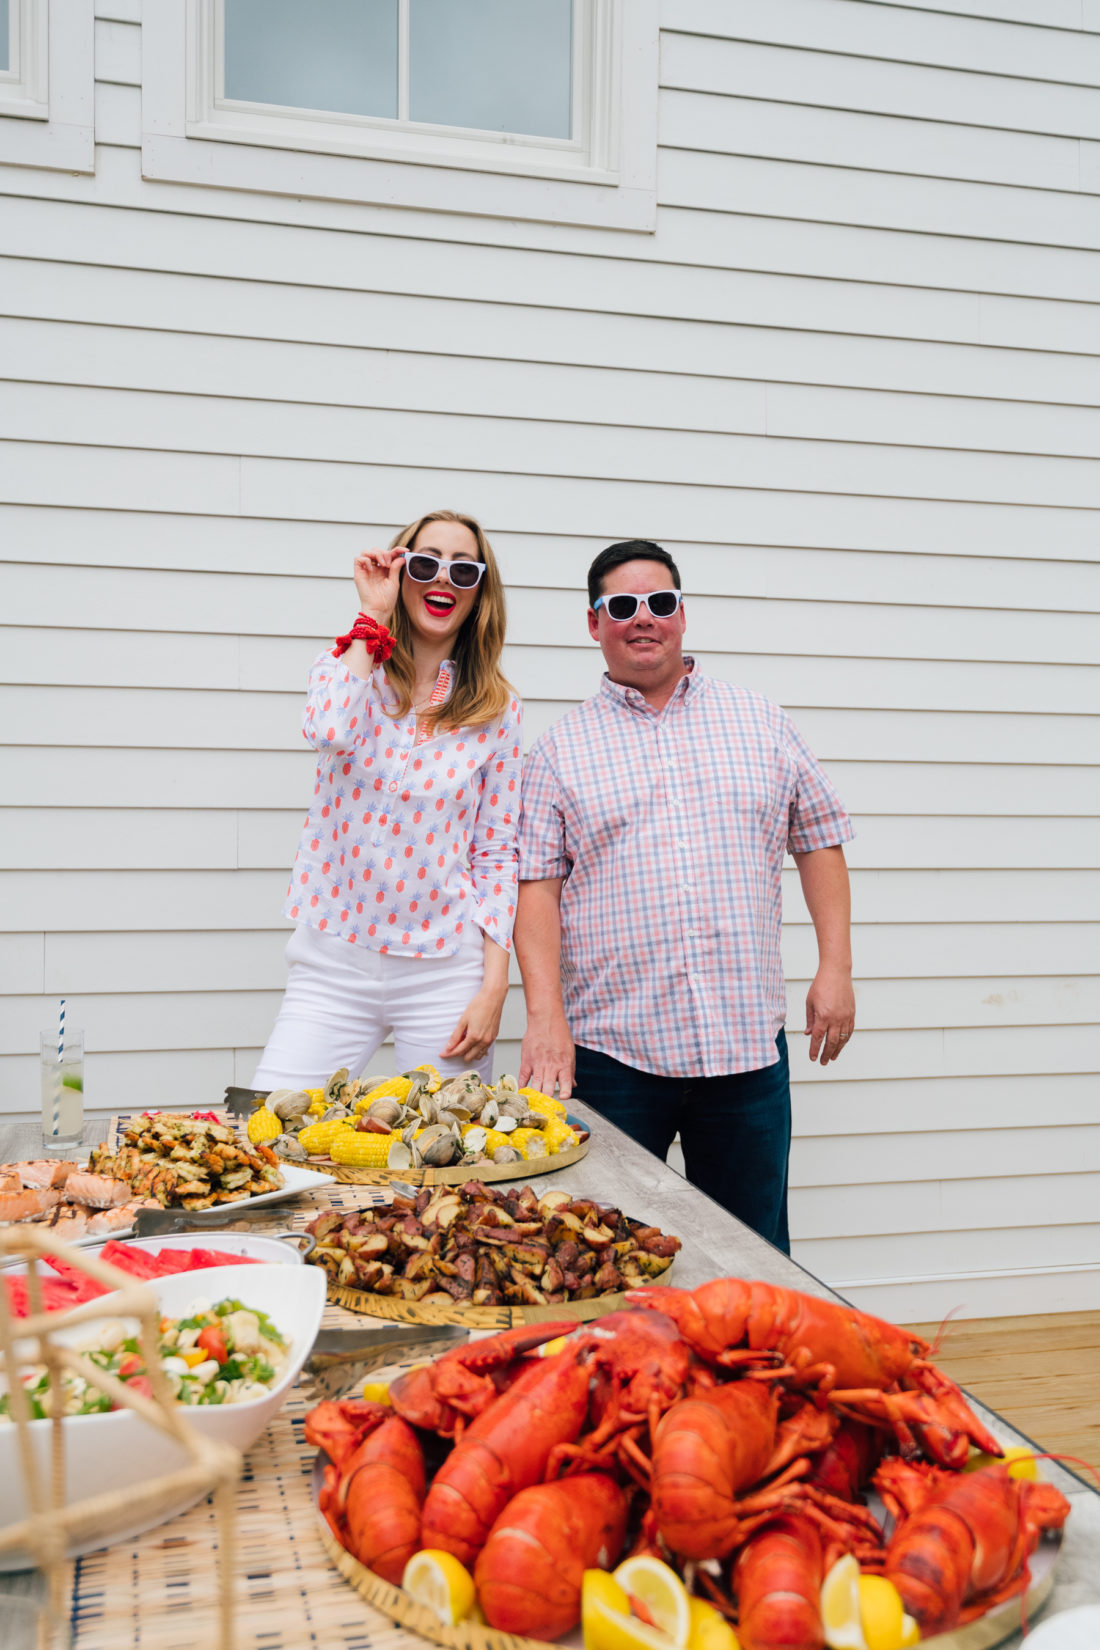 Fjord Fish Market provided lobster, salmon, clams and crab cakes for Eva Amurri Martino's clambake